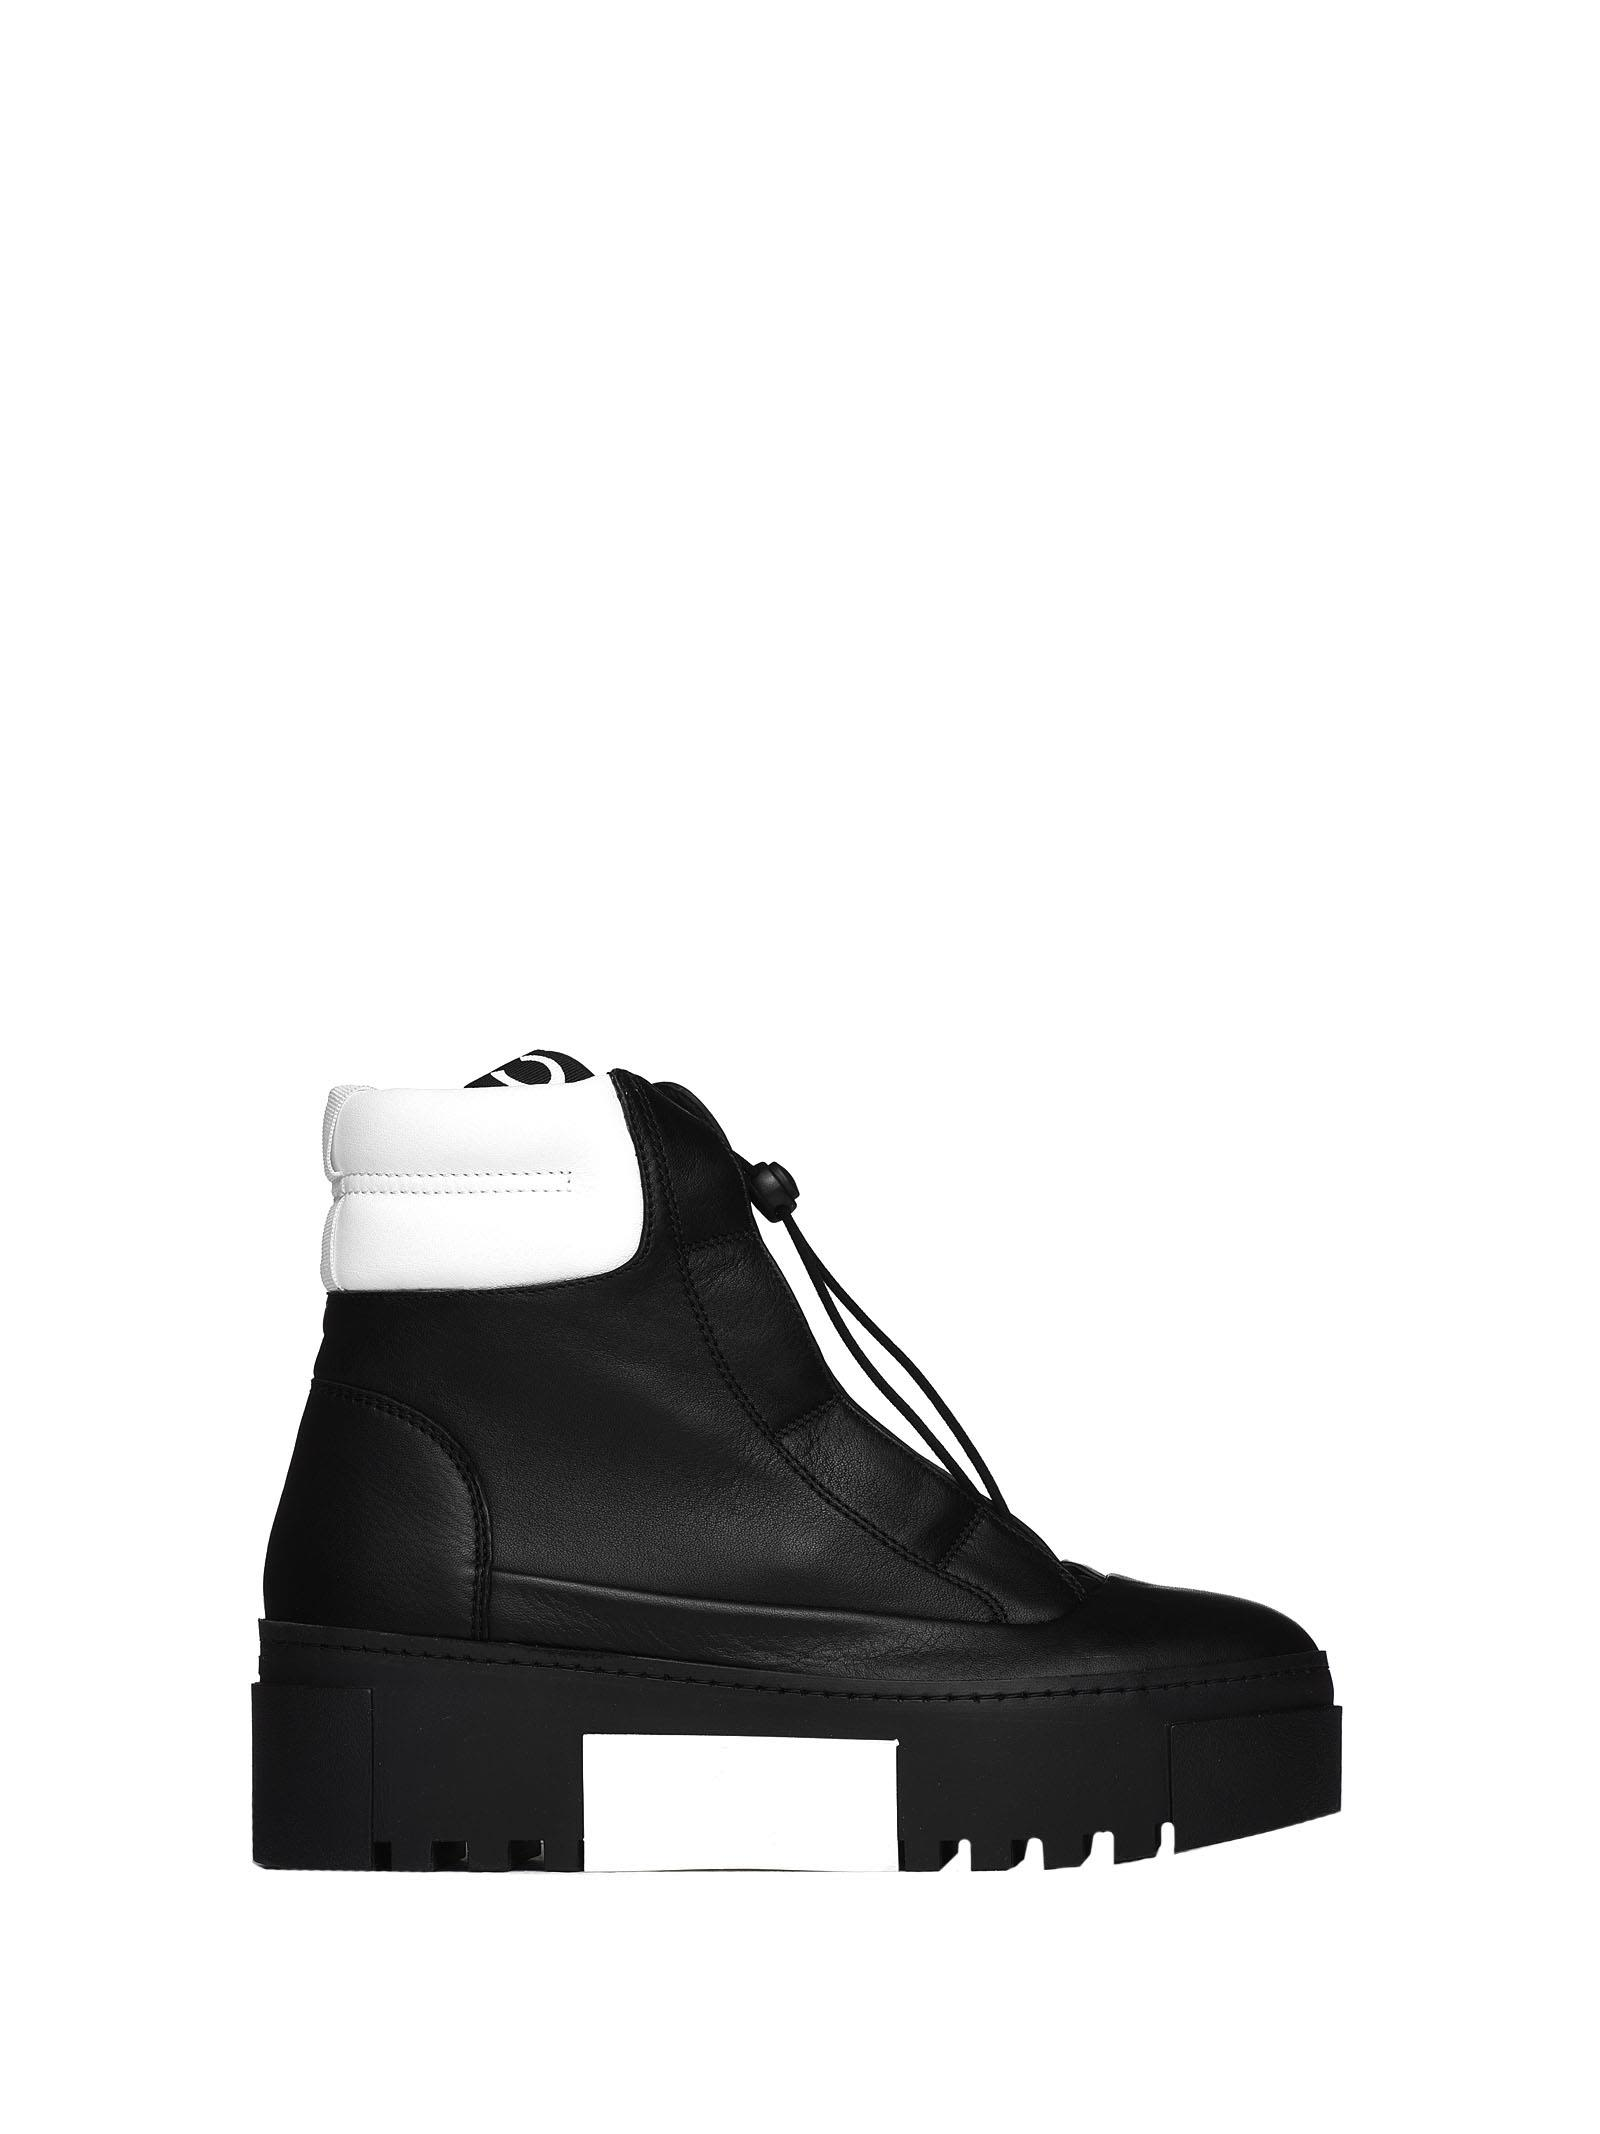 vic matié -  Black And White Hiking-style Heeled Ankle Boots